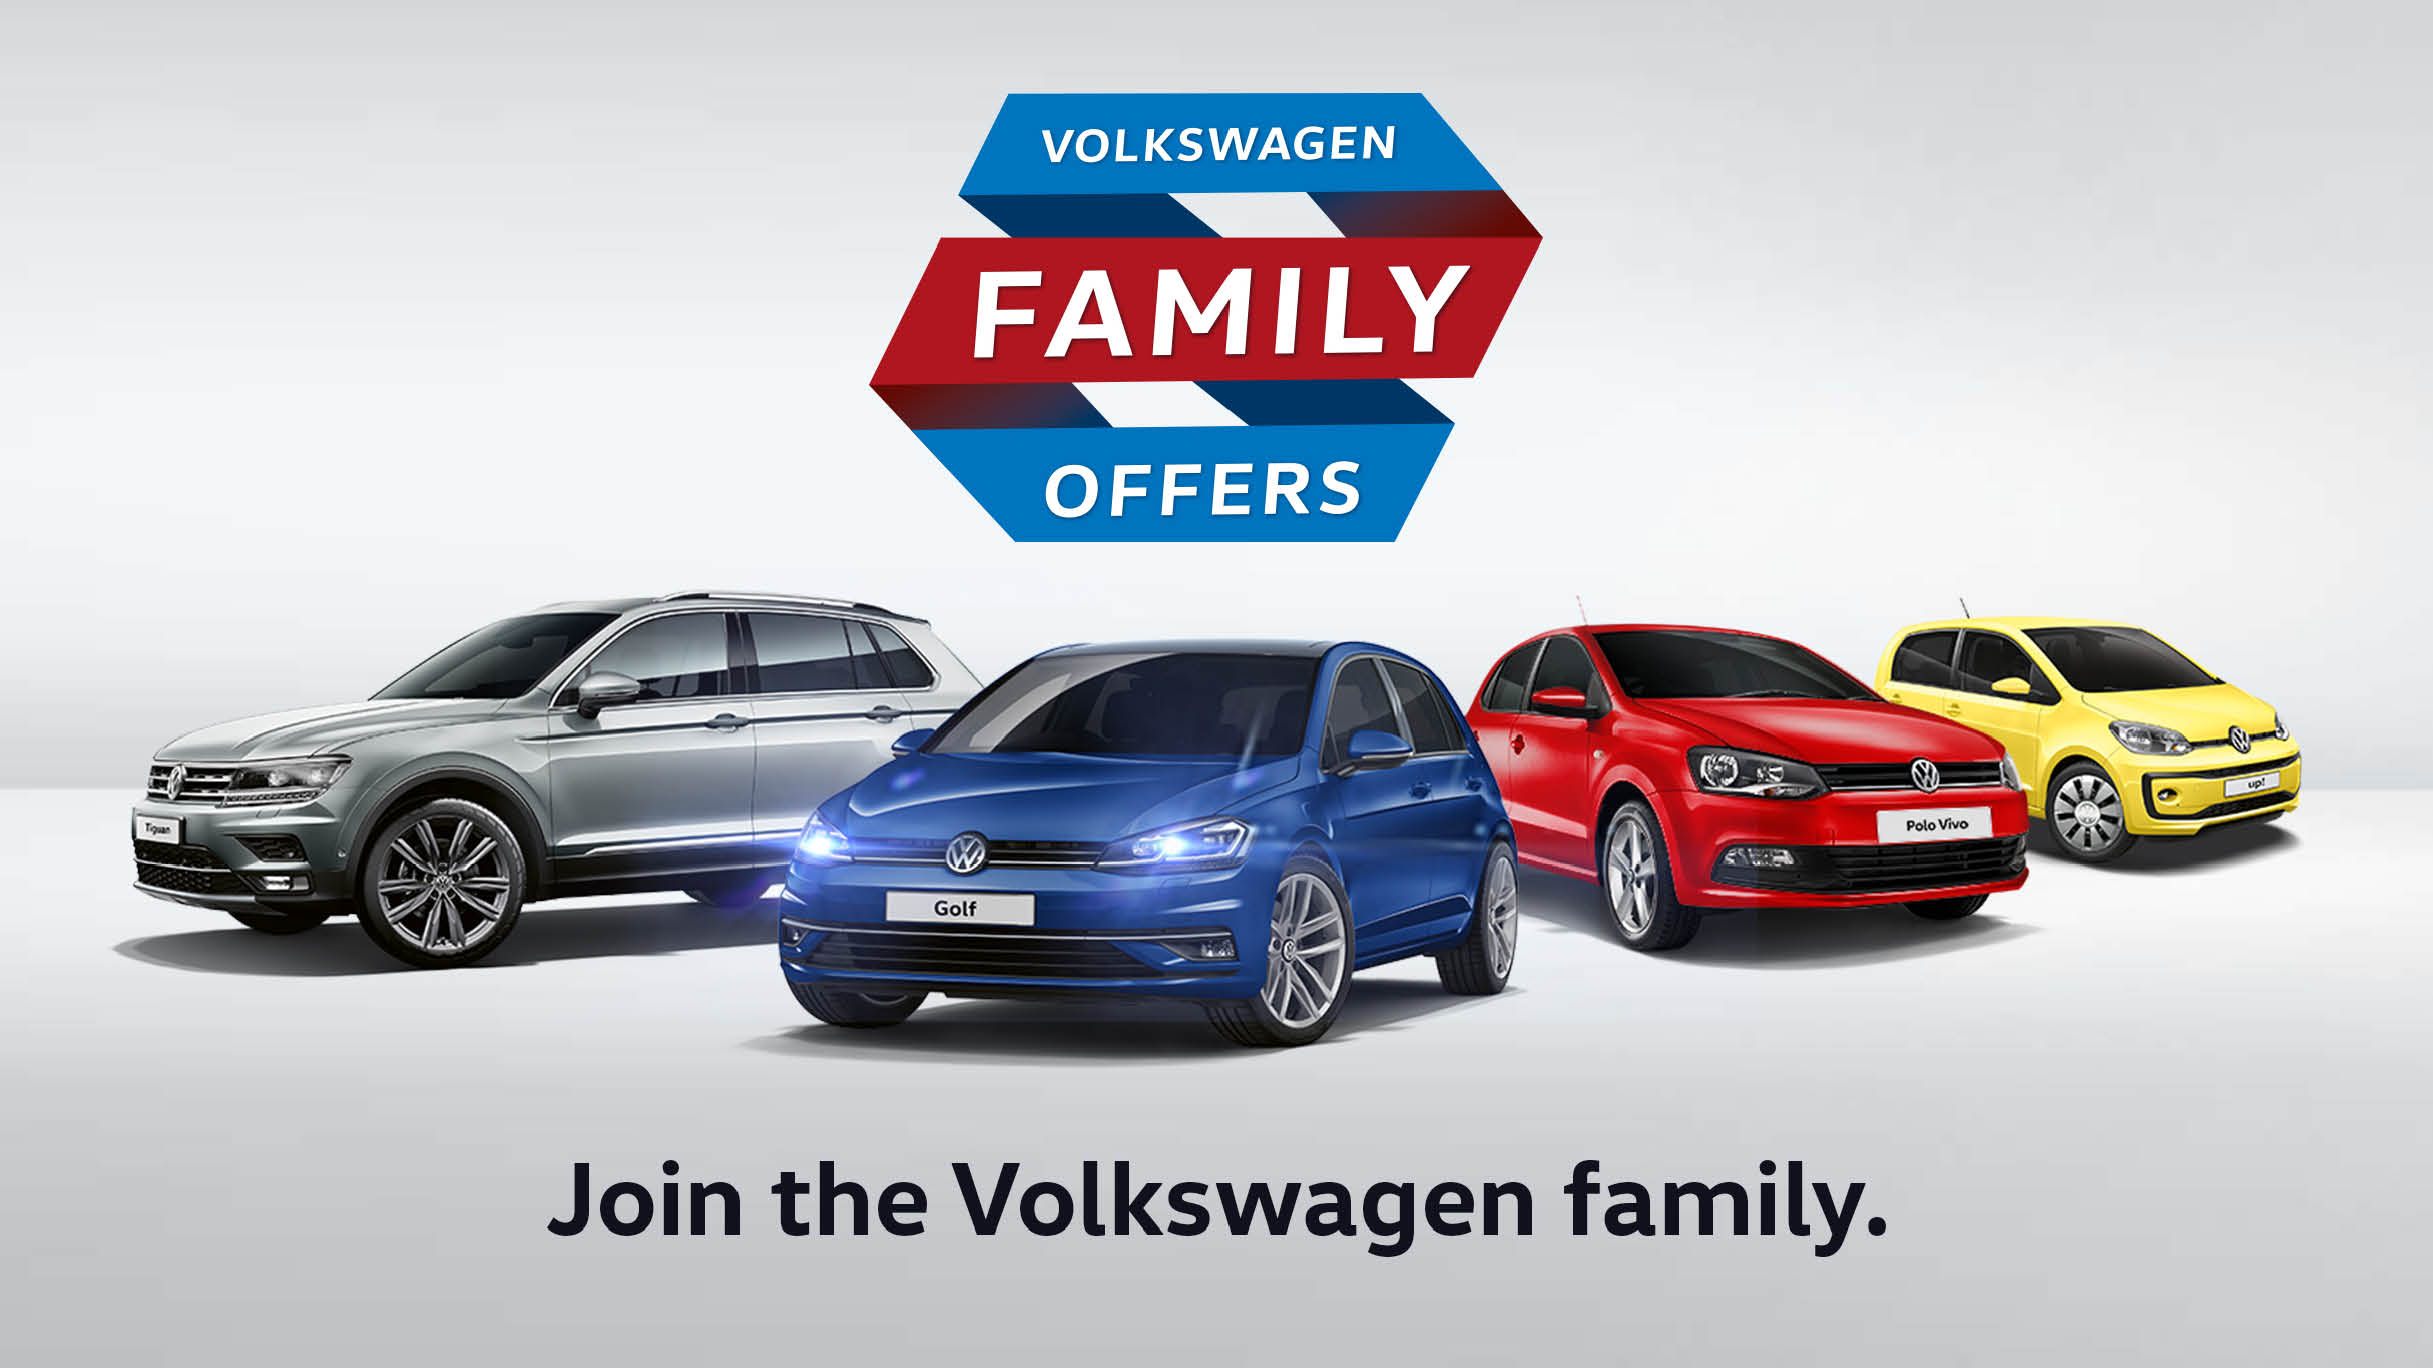 VW Family offers